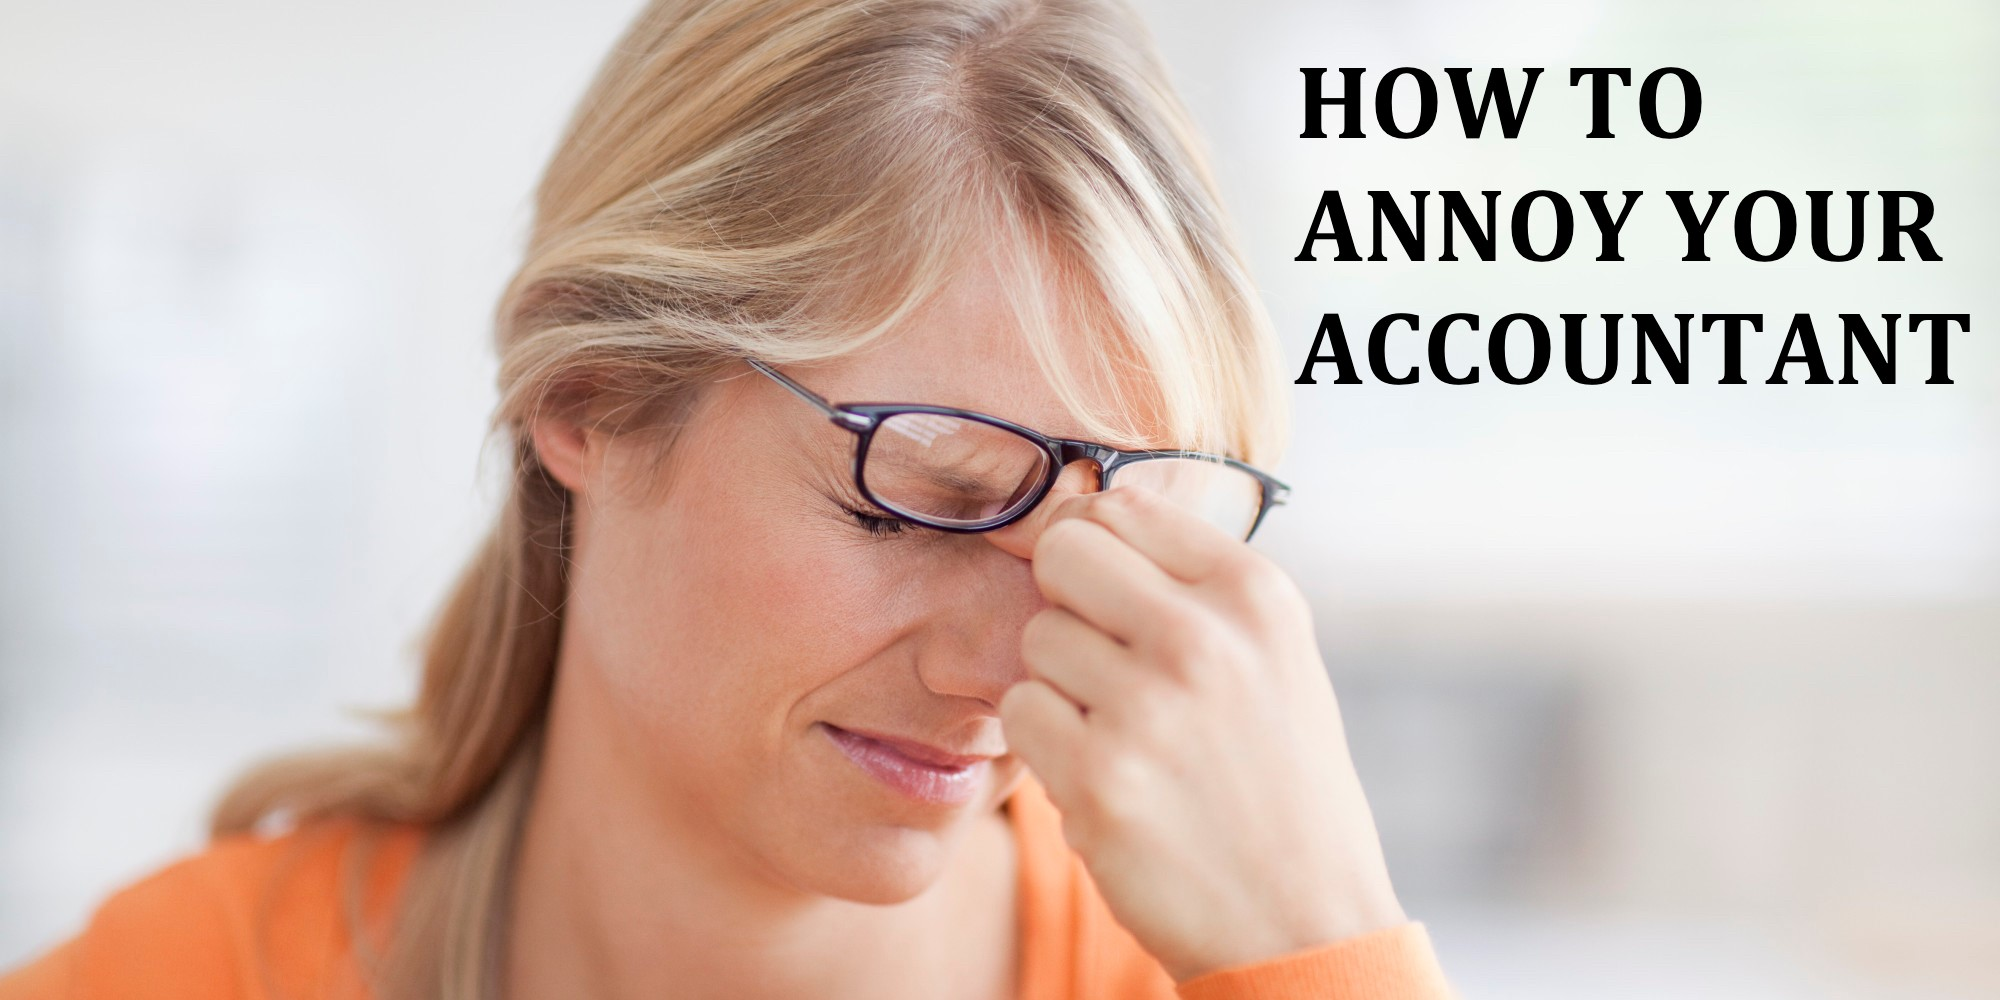 How to annoy your accountant